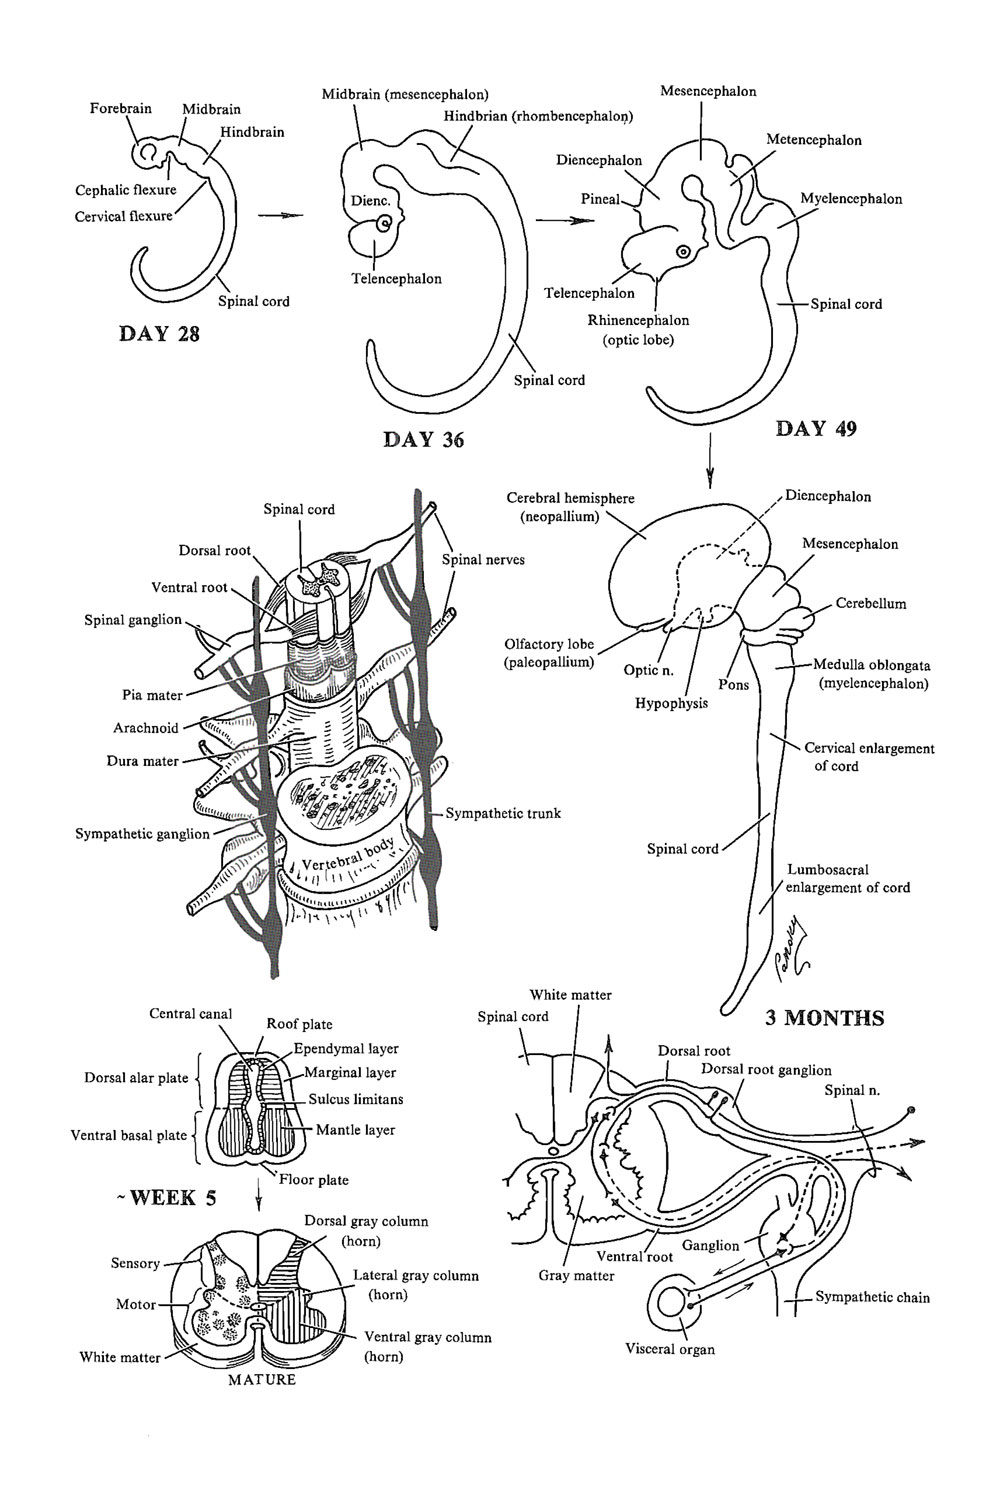 general considerations related to the anatomy of the spinal cord: image #1